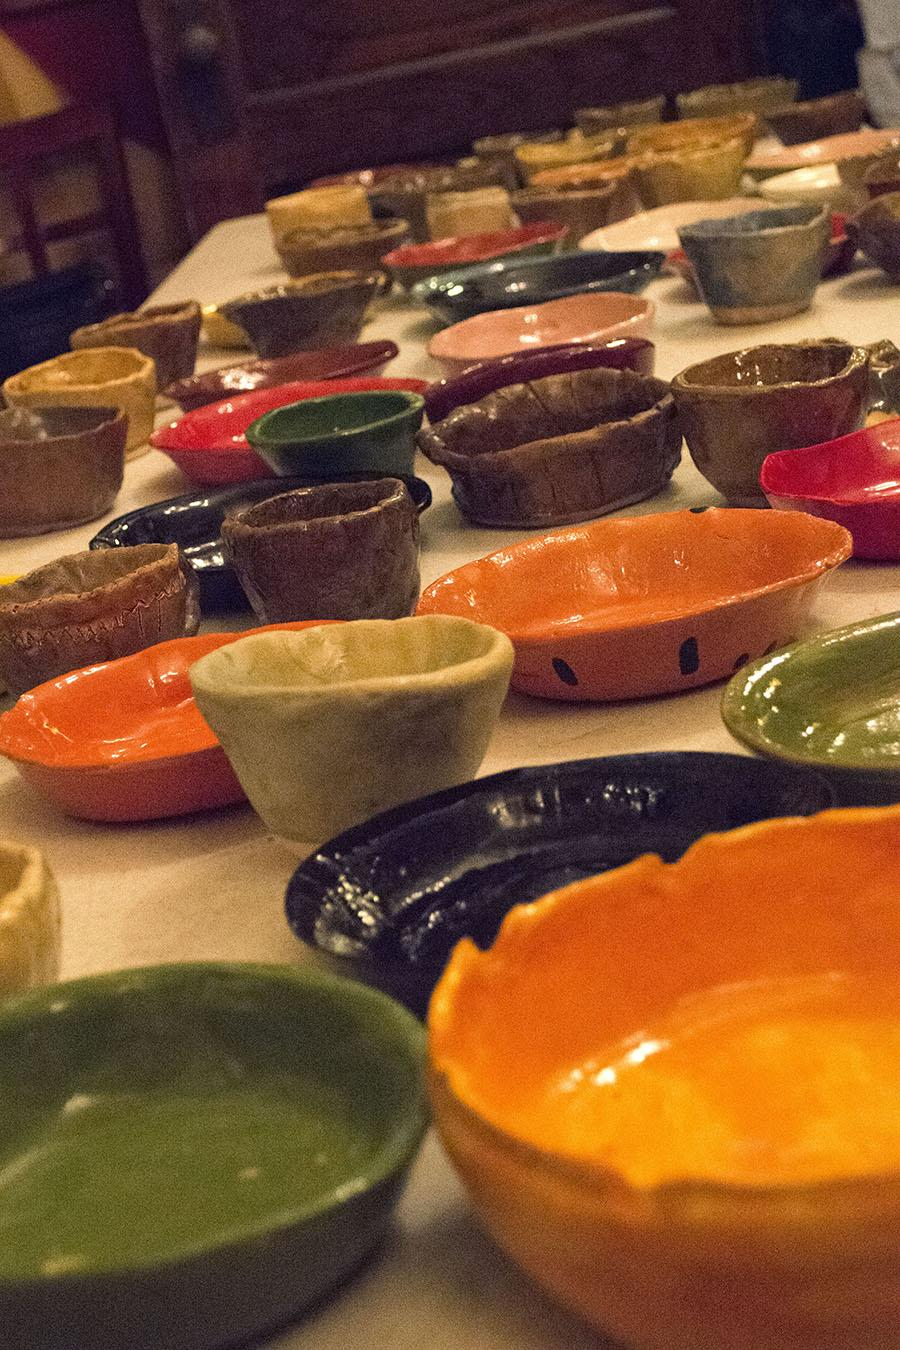 Students from Black Hills State University Art Department and Spearfish High School donated handmade bowls for the Empty Bowls fundraising event held at the Deadwood Social Club Oct. 14.